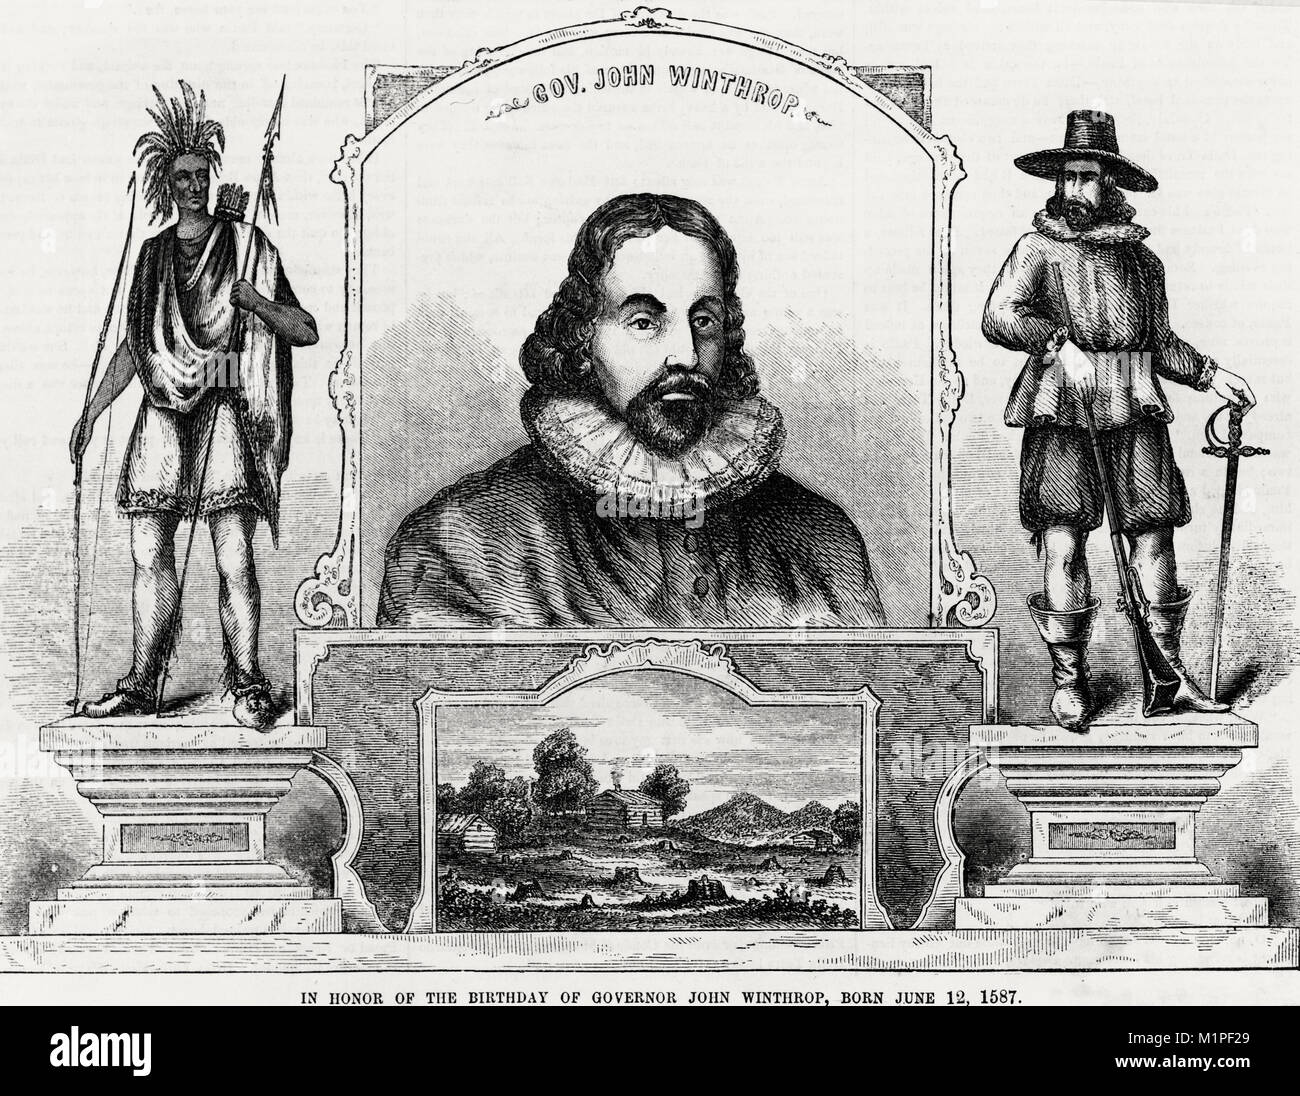 Governor John Winthrop - In honor of the birthday of Governor John Winthrop, born June 12, 1587 - Stock Image